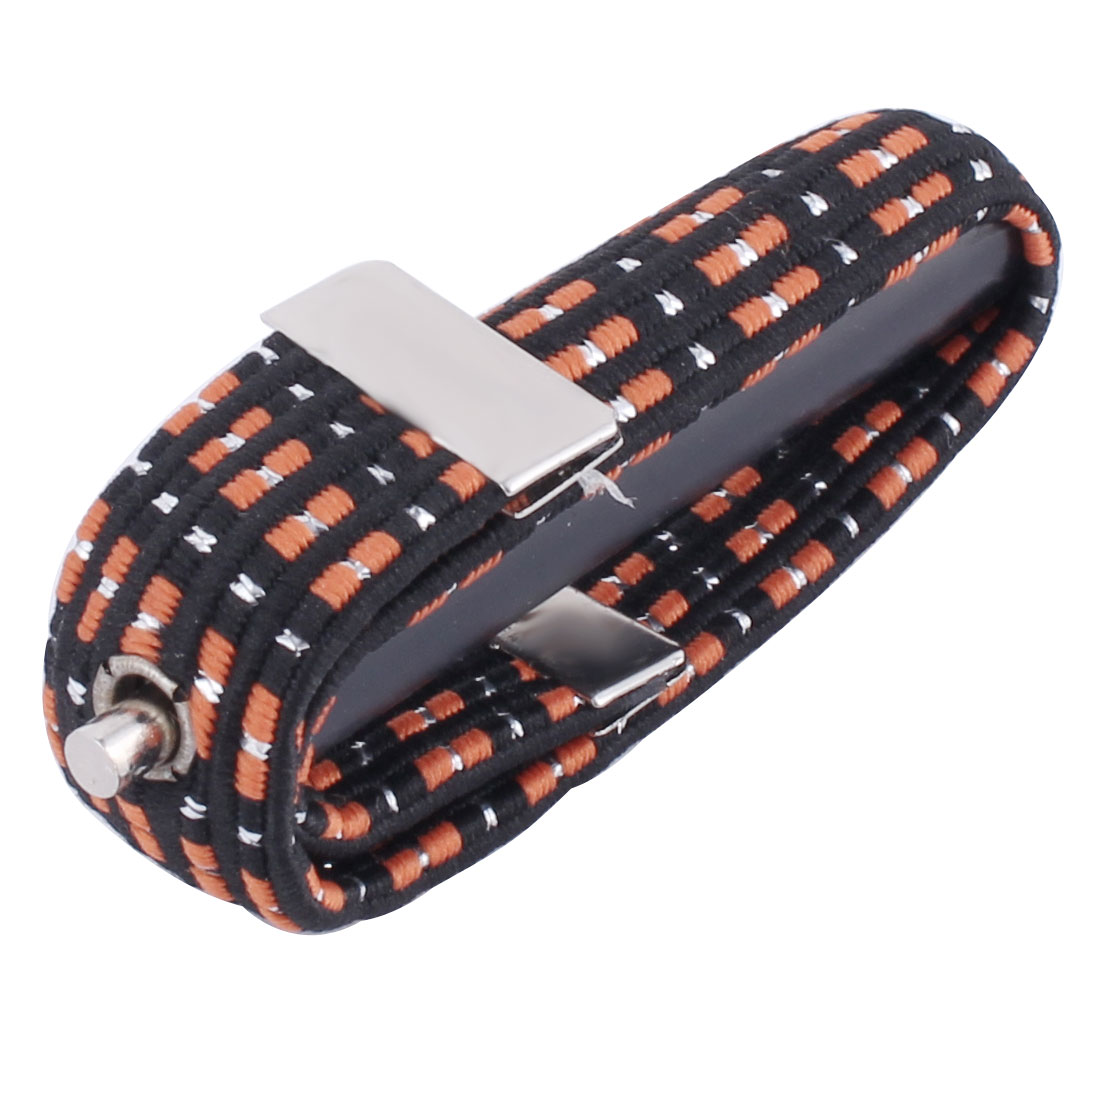 Elastic Nylon Band Plastic Guitar Trigger Capo Black Orange Silver Tone